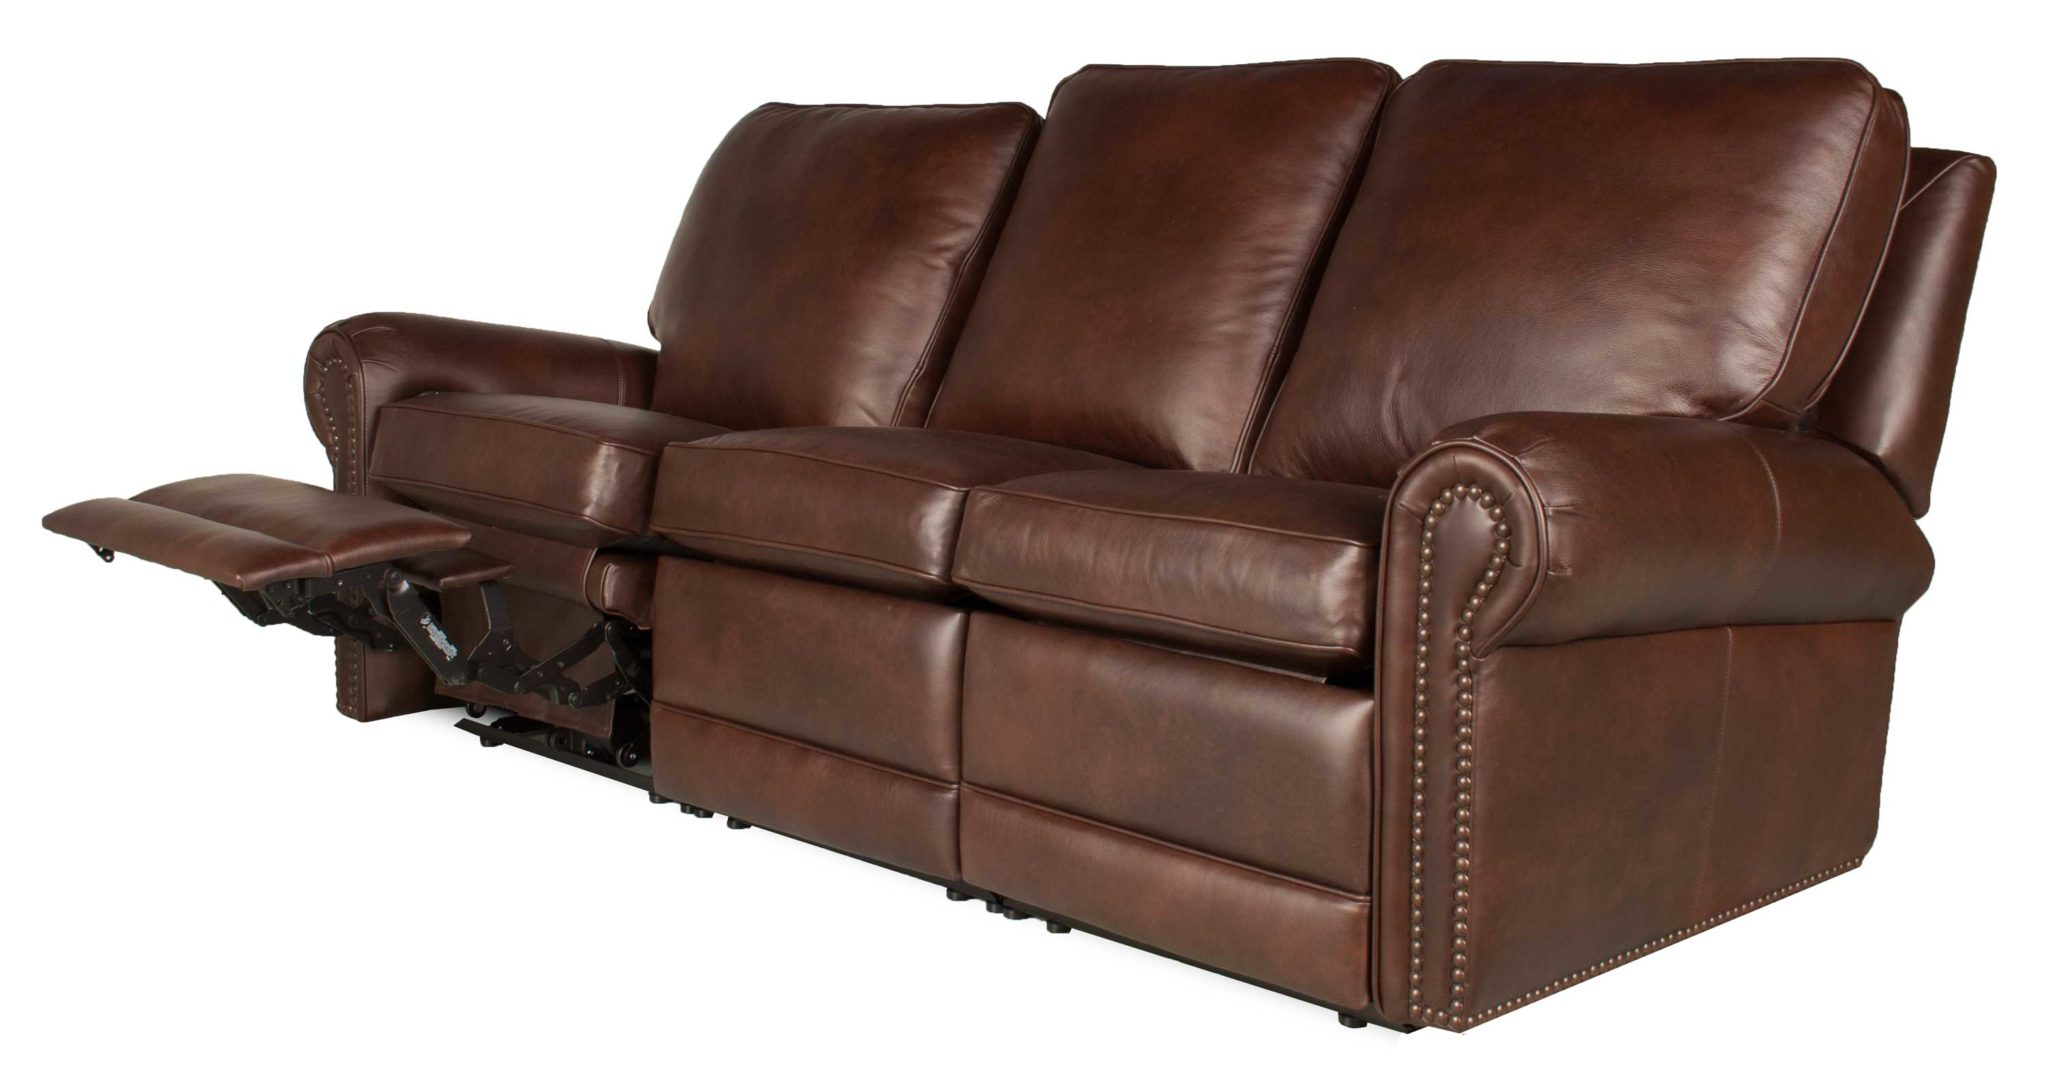 virginia reclining leather sofa leather creations furniture rh leathercreationsfurniture com recliner sofa leather uk sofa recliner leather by room to go